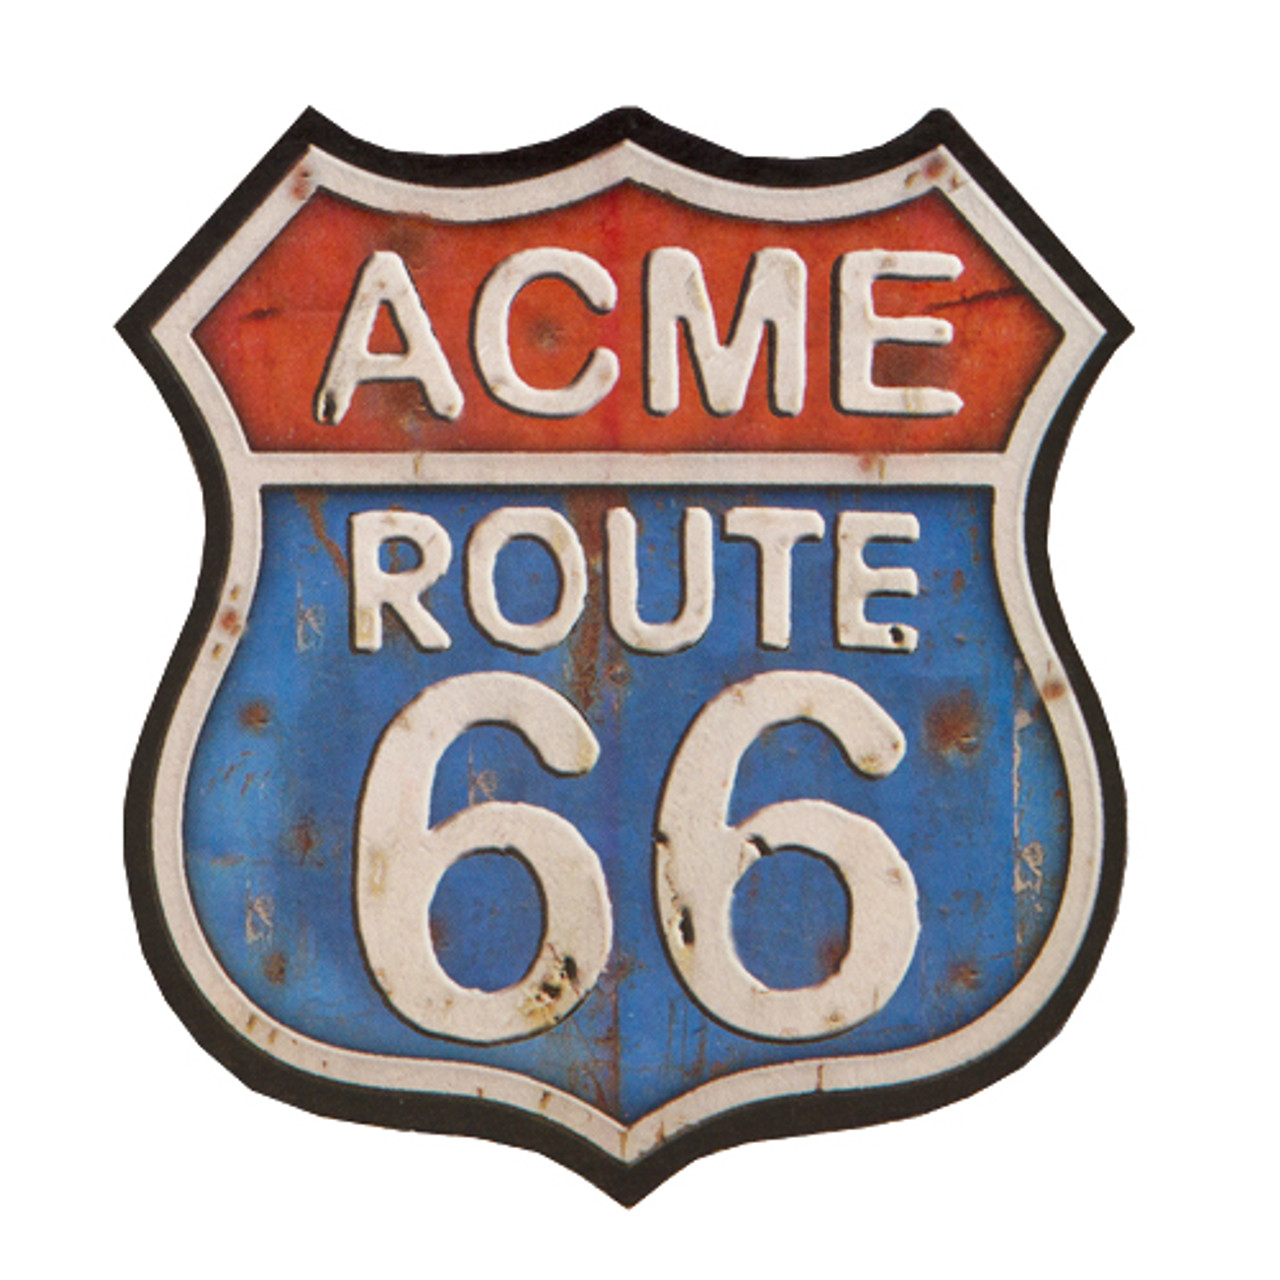 Acme Route 66 Big Rig Cigars - 6 x 54 (Box of 20)